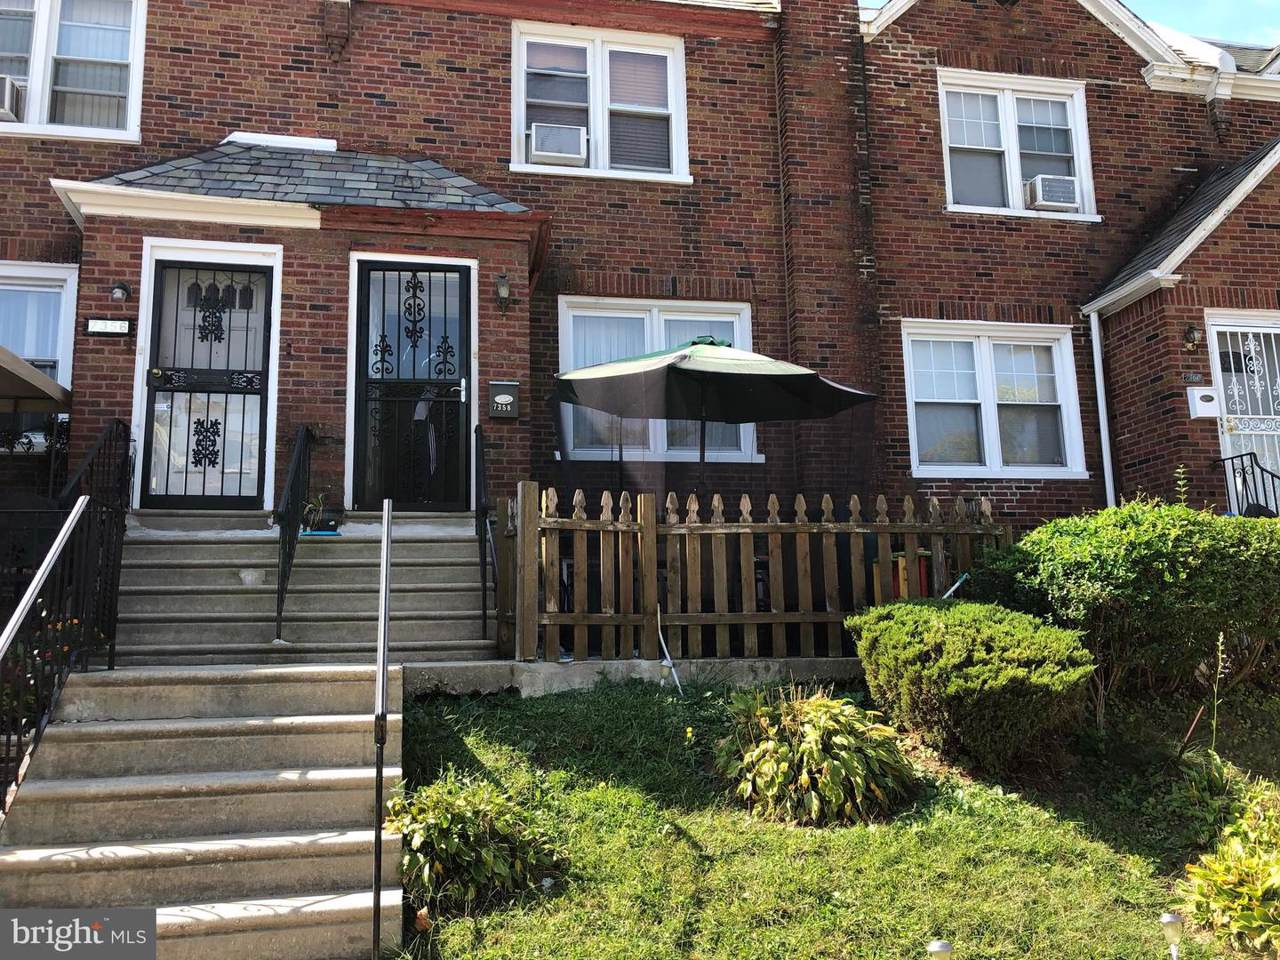 7358 Rugby Street - Photo 1